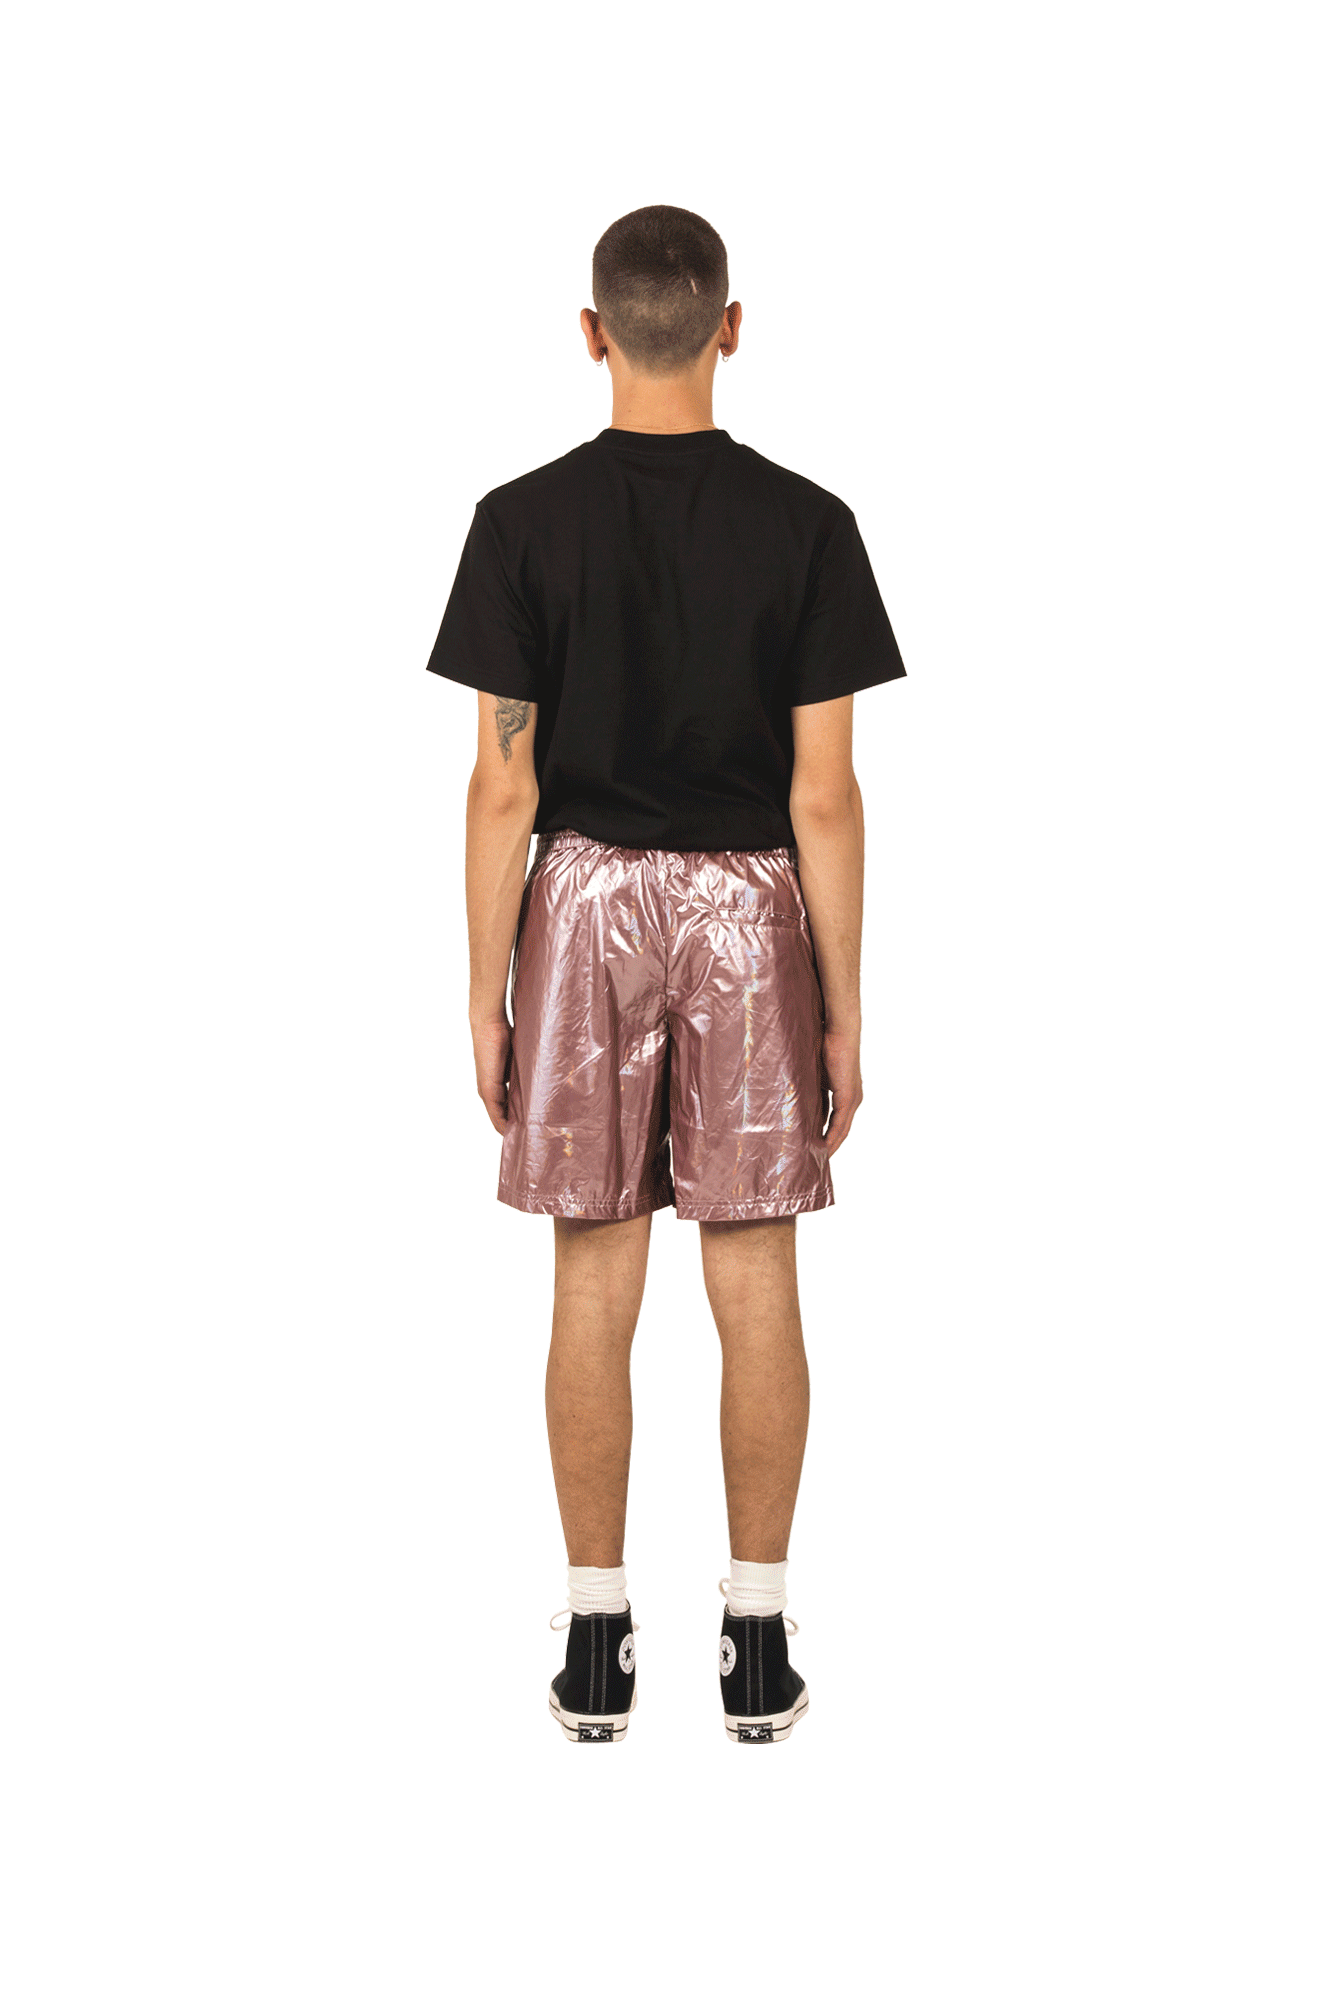 Pleasures Shorts Liquid Metallic Shorts Pink P19S105007#050#PINK#S - One Block Down